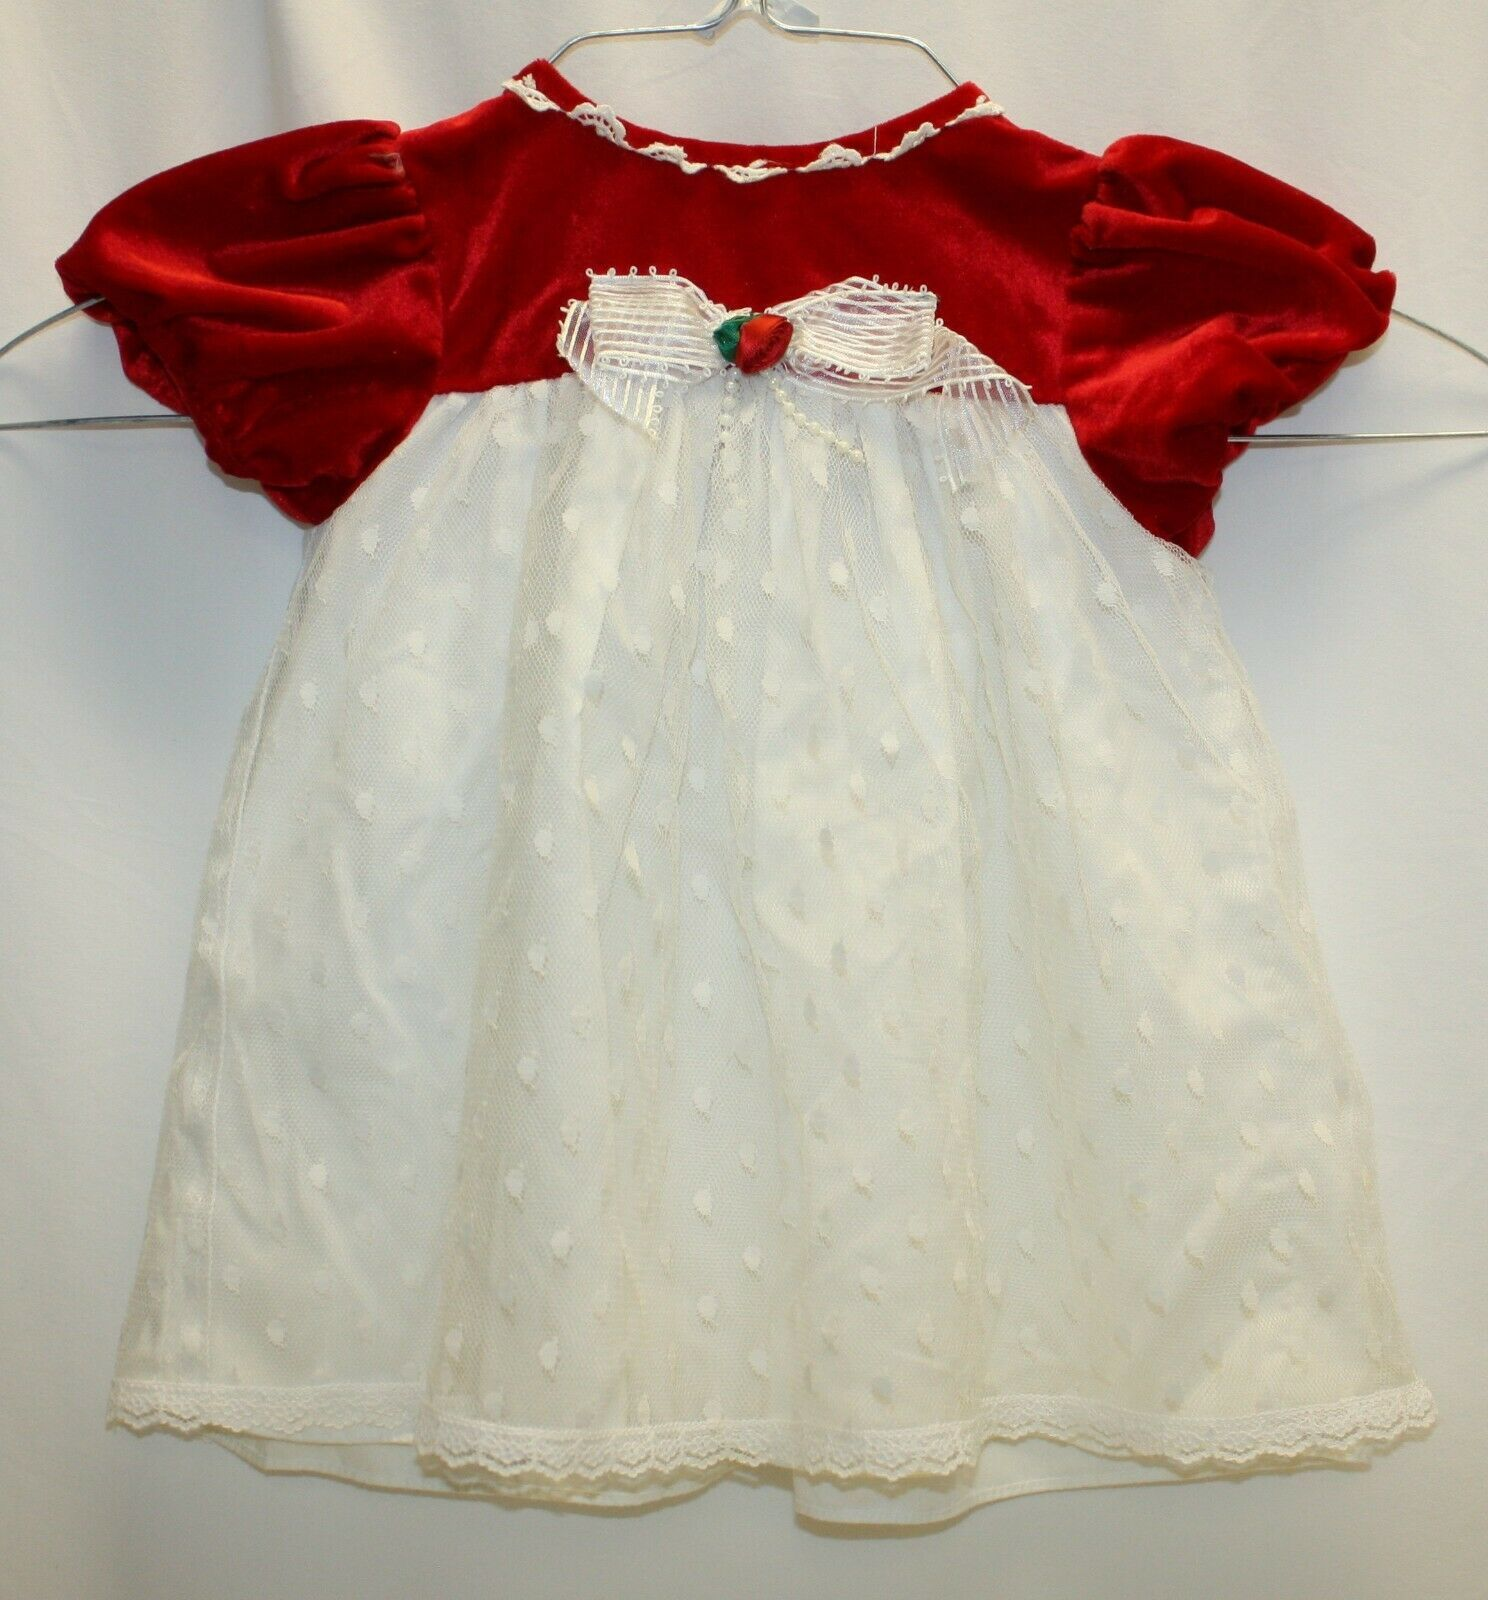 Primary image for Nutcracker Christmas Dress Size 2T